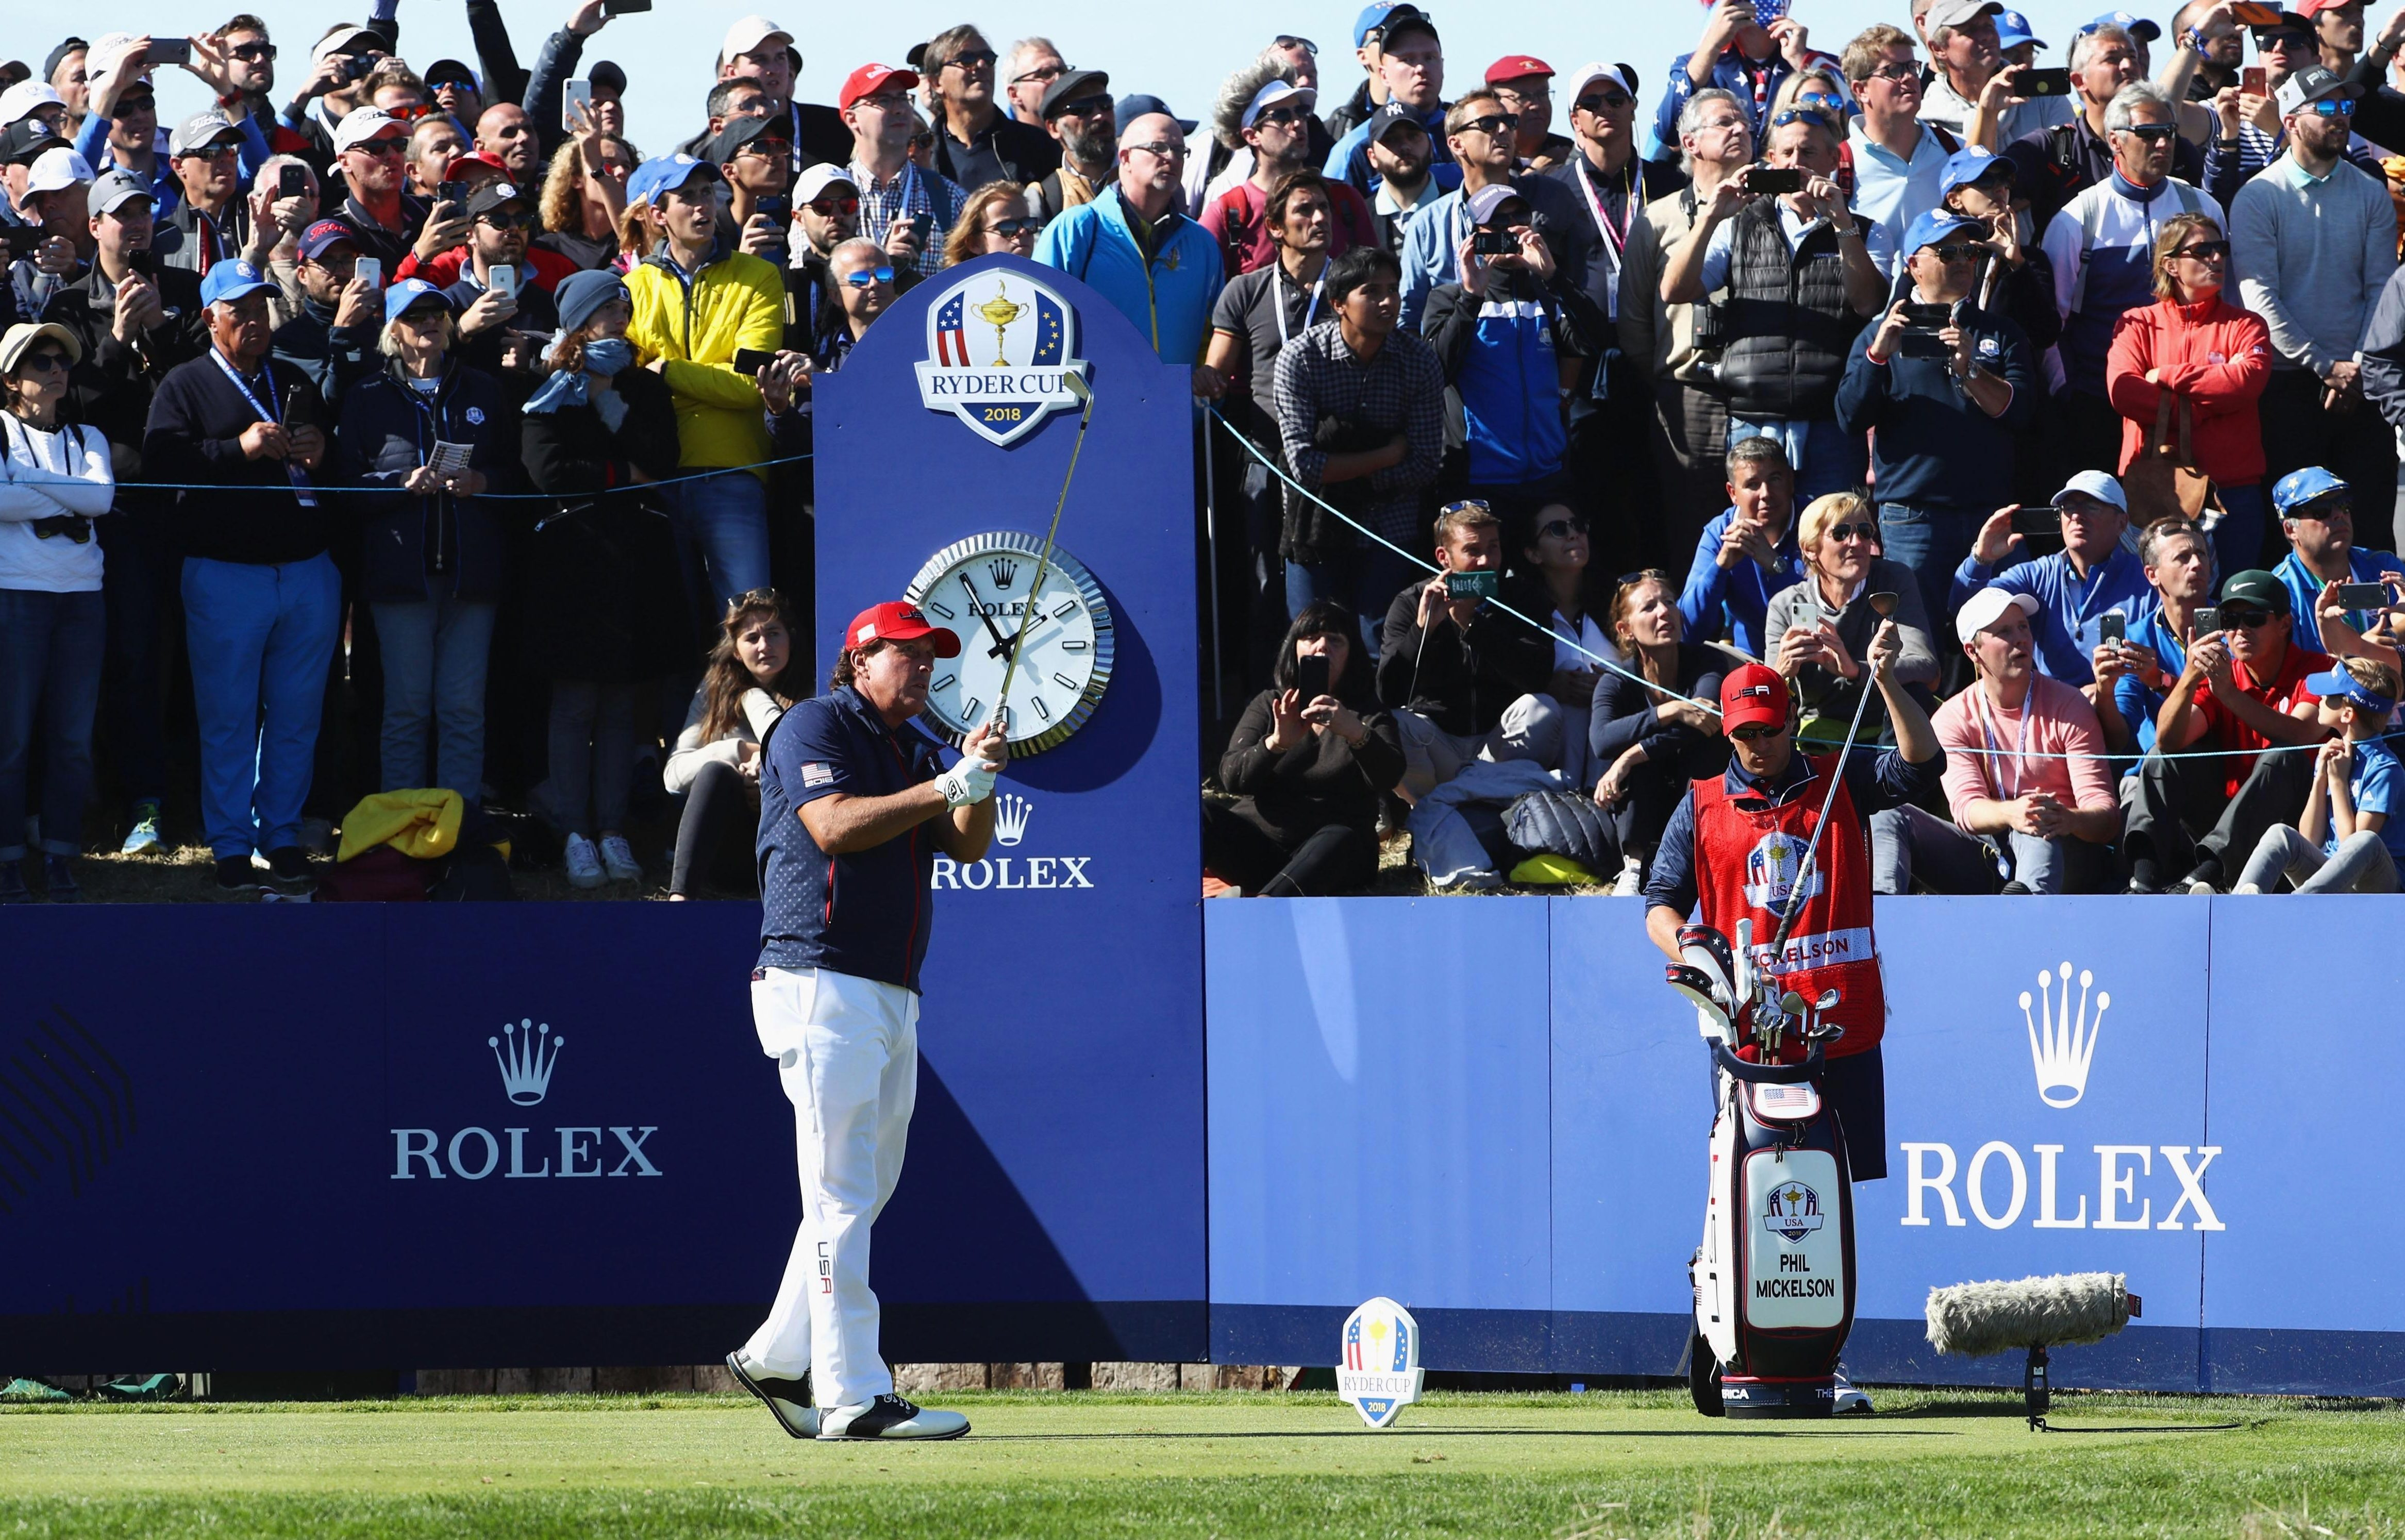 Phil Mickelson drove his tee shot into the water on the 16th before conceding the match to Francesco Molinari